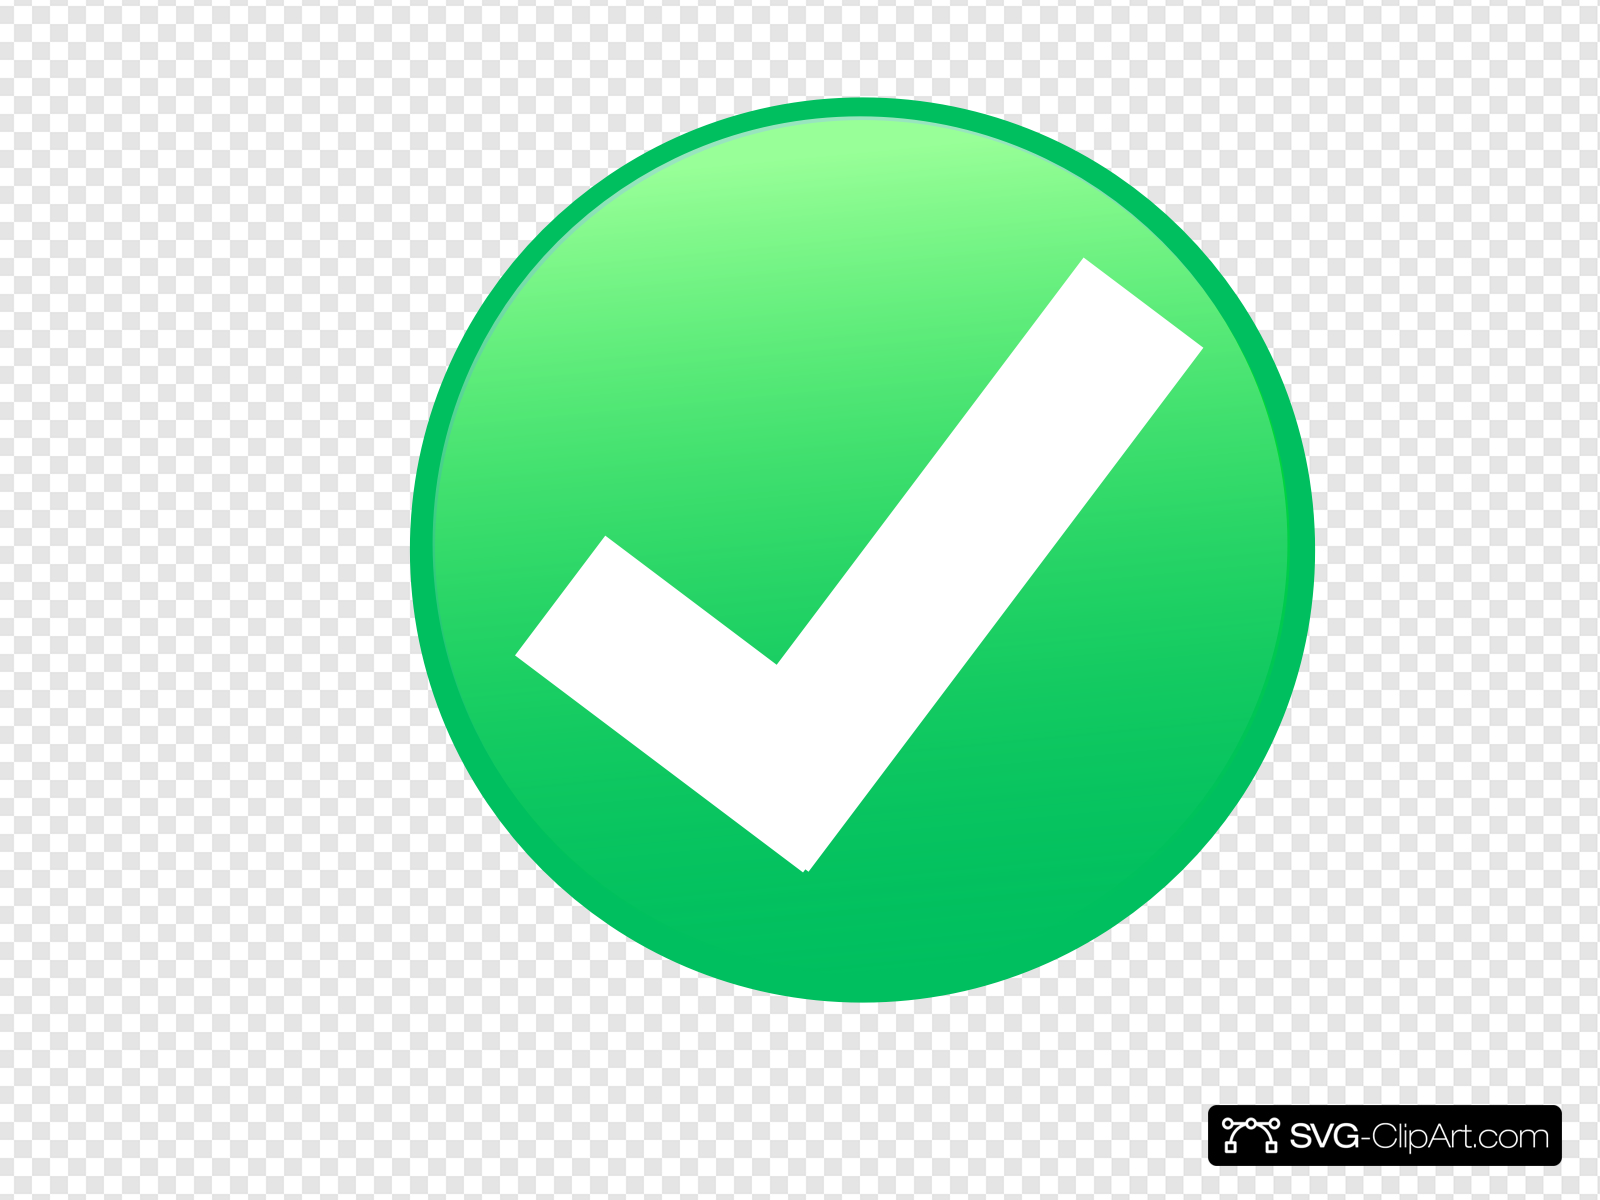 Haken Clip art, Icon and SVG.